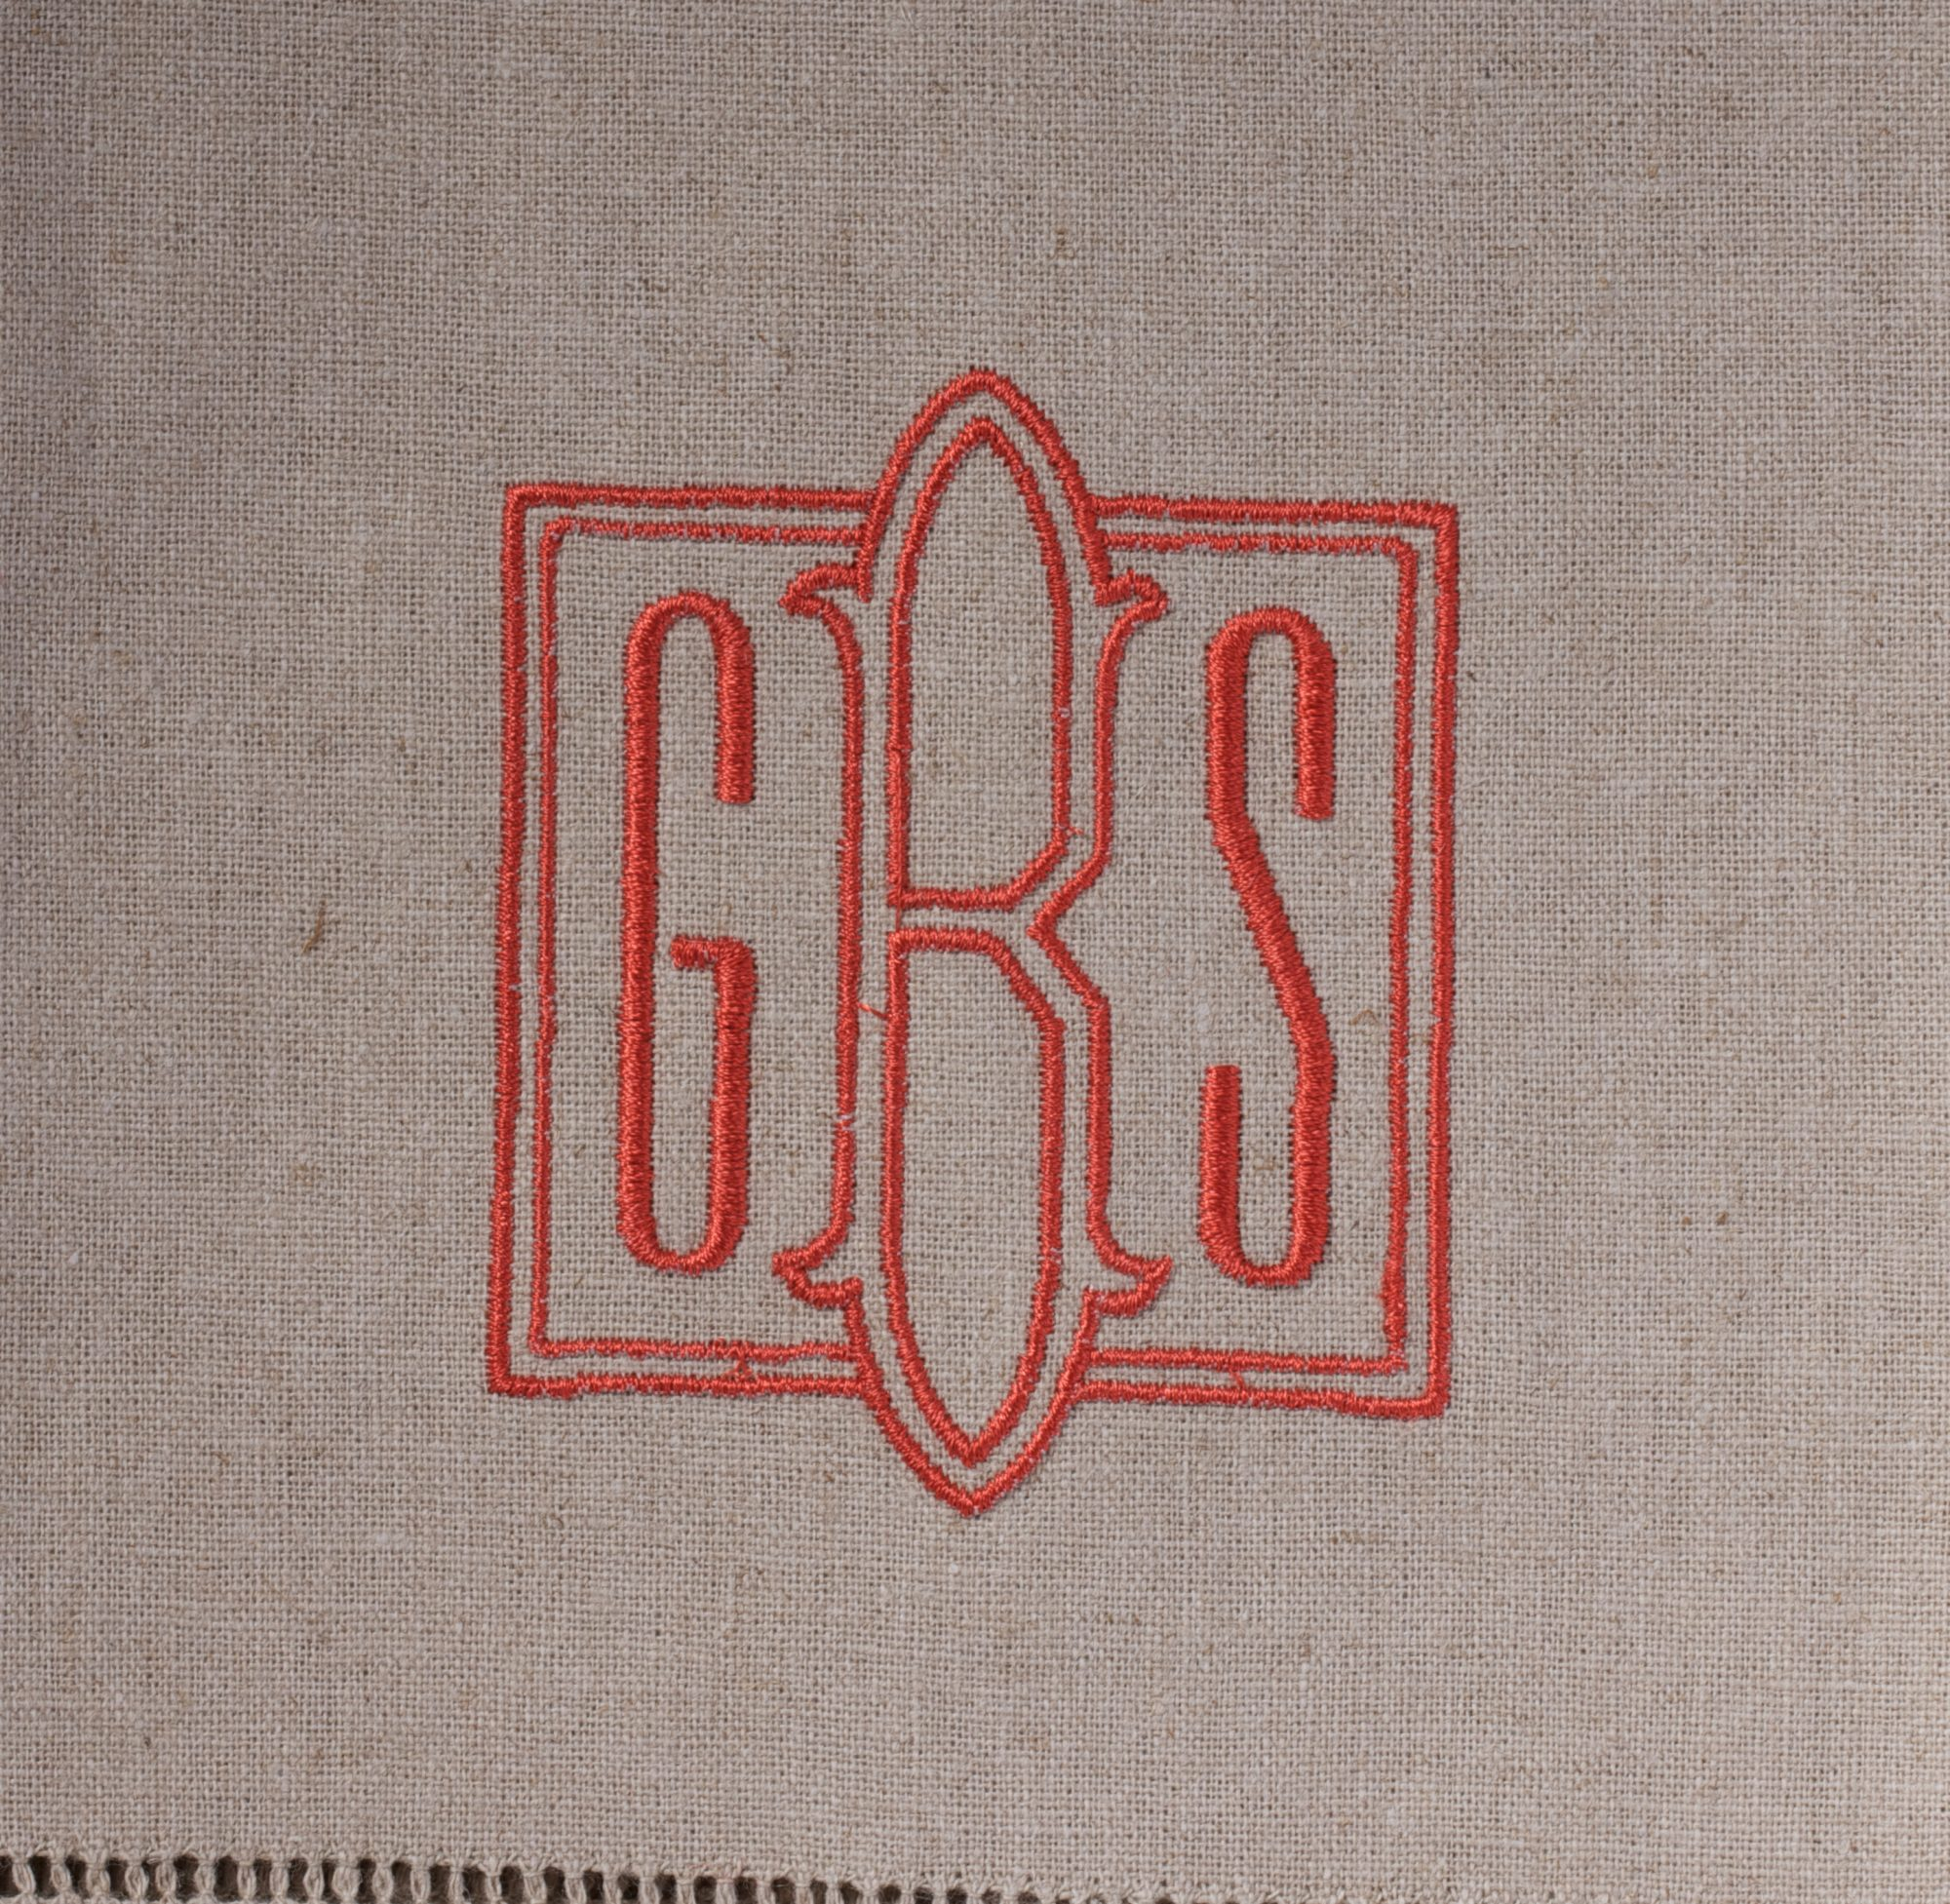 3. Our Monograms